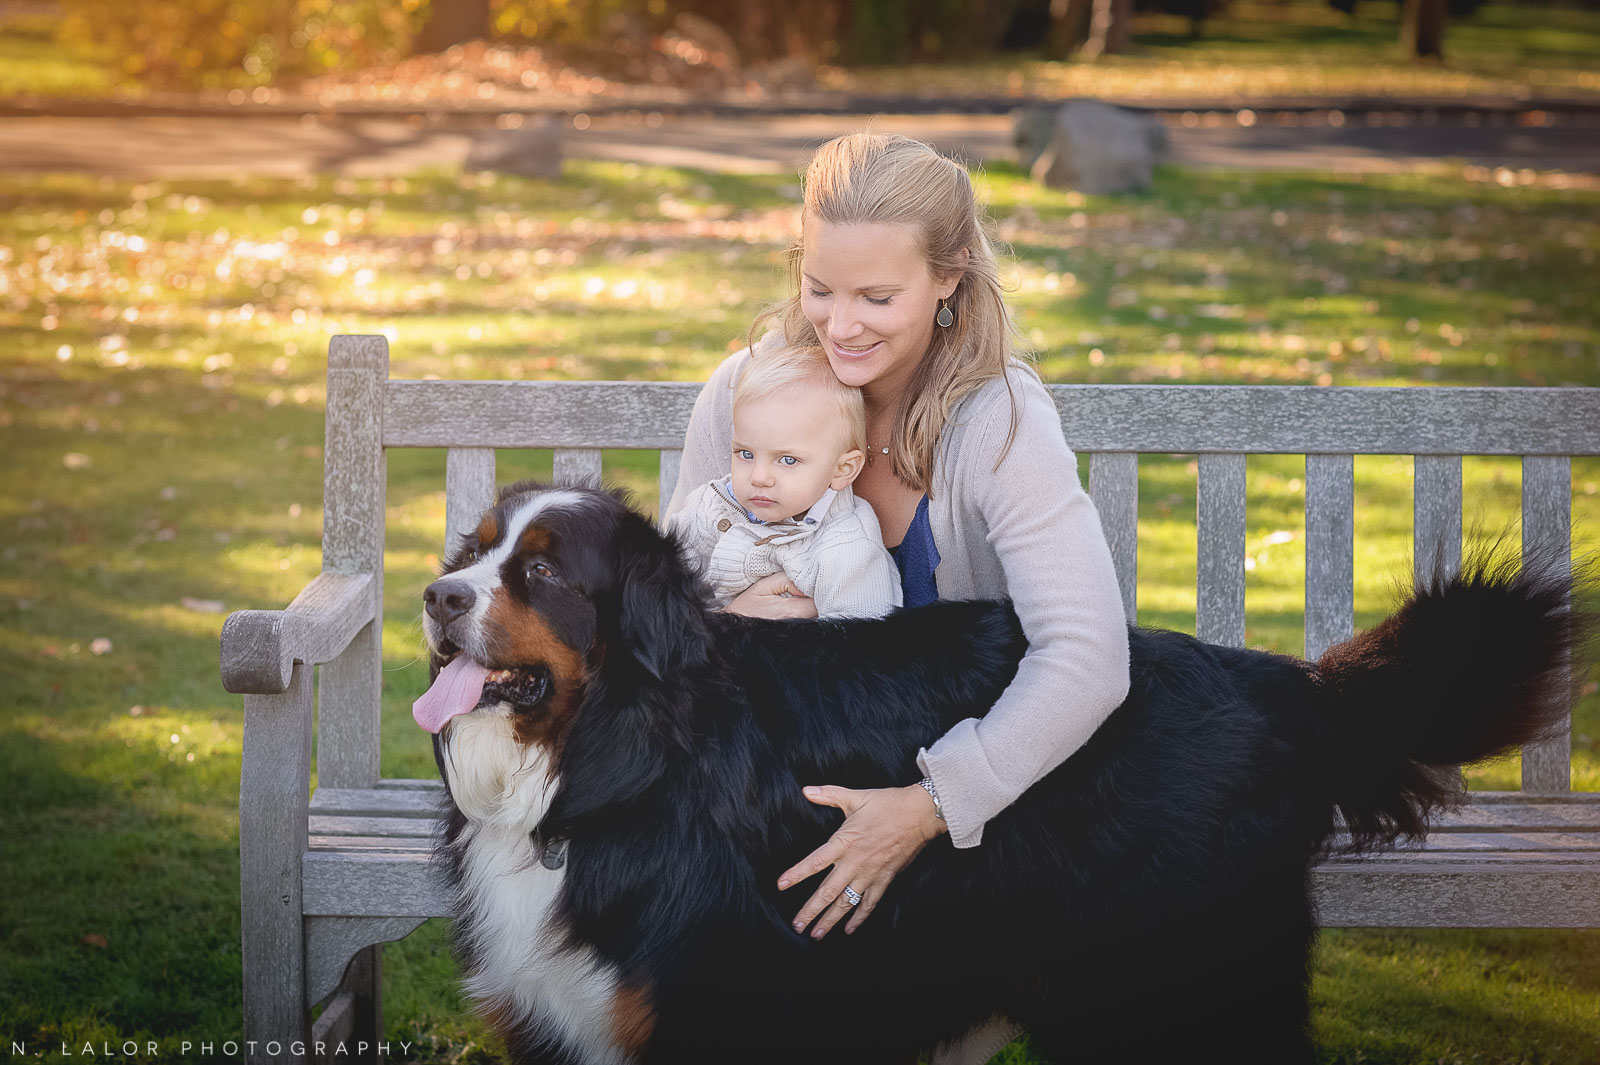 nlalor-photography-2014-styled-family-life-binney-park-old-greenwich-fall-5.jpg